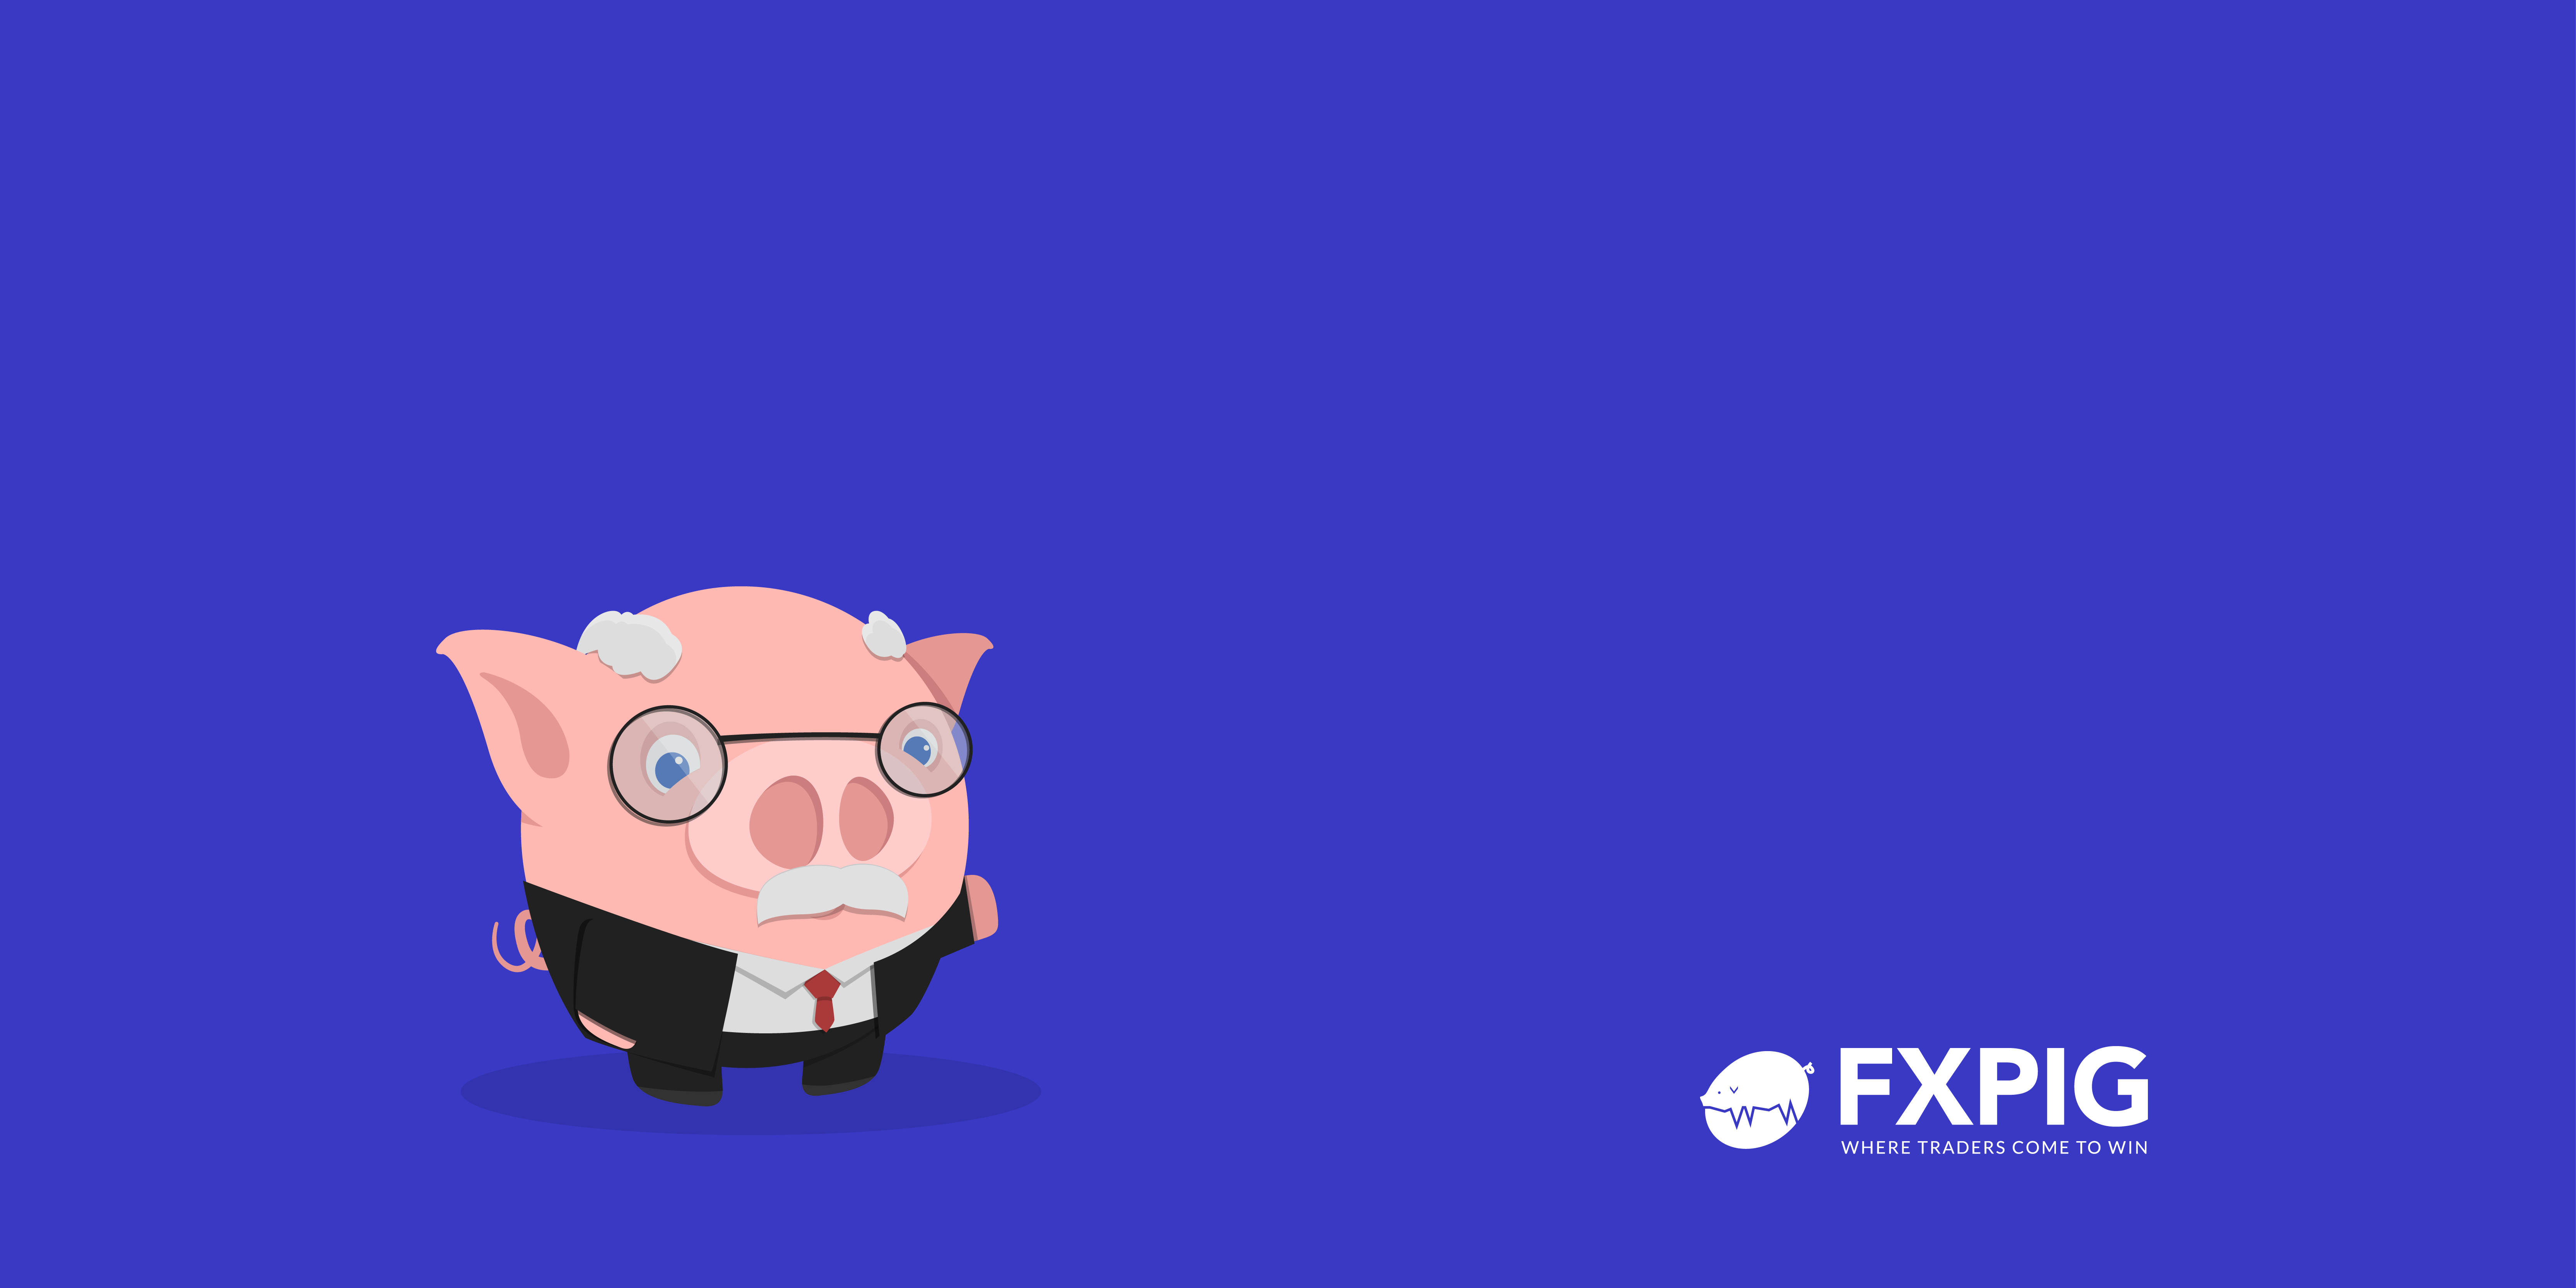 FOREX_trading-quote-pig-insider1308_FXPIG